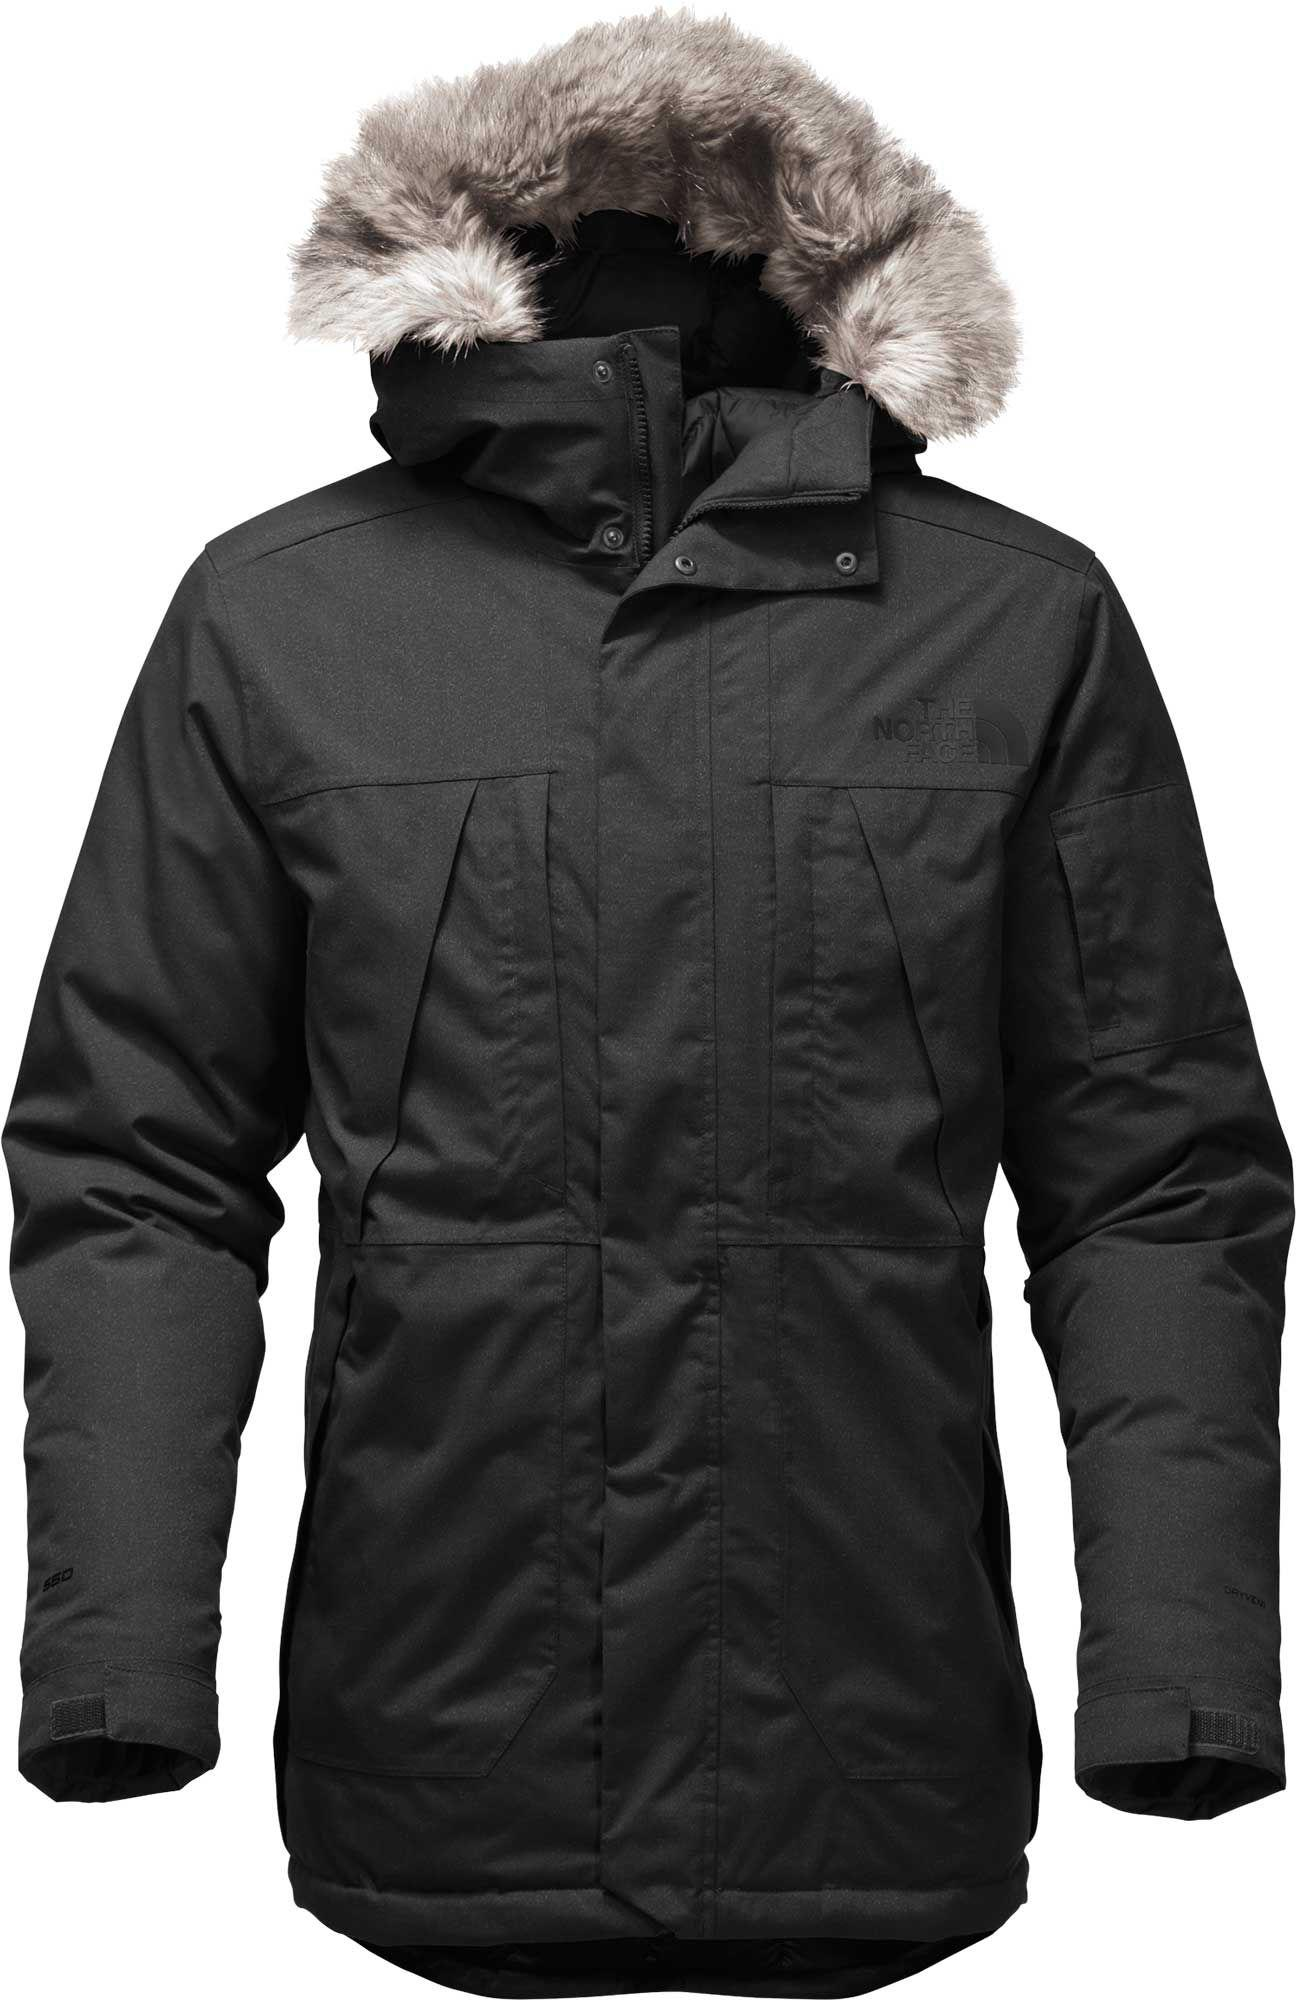 48a47a7fd france the north face prospectus down jacket uk 1f4ba 9f9d1